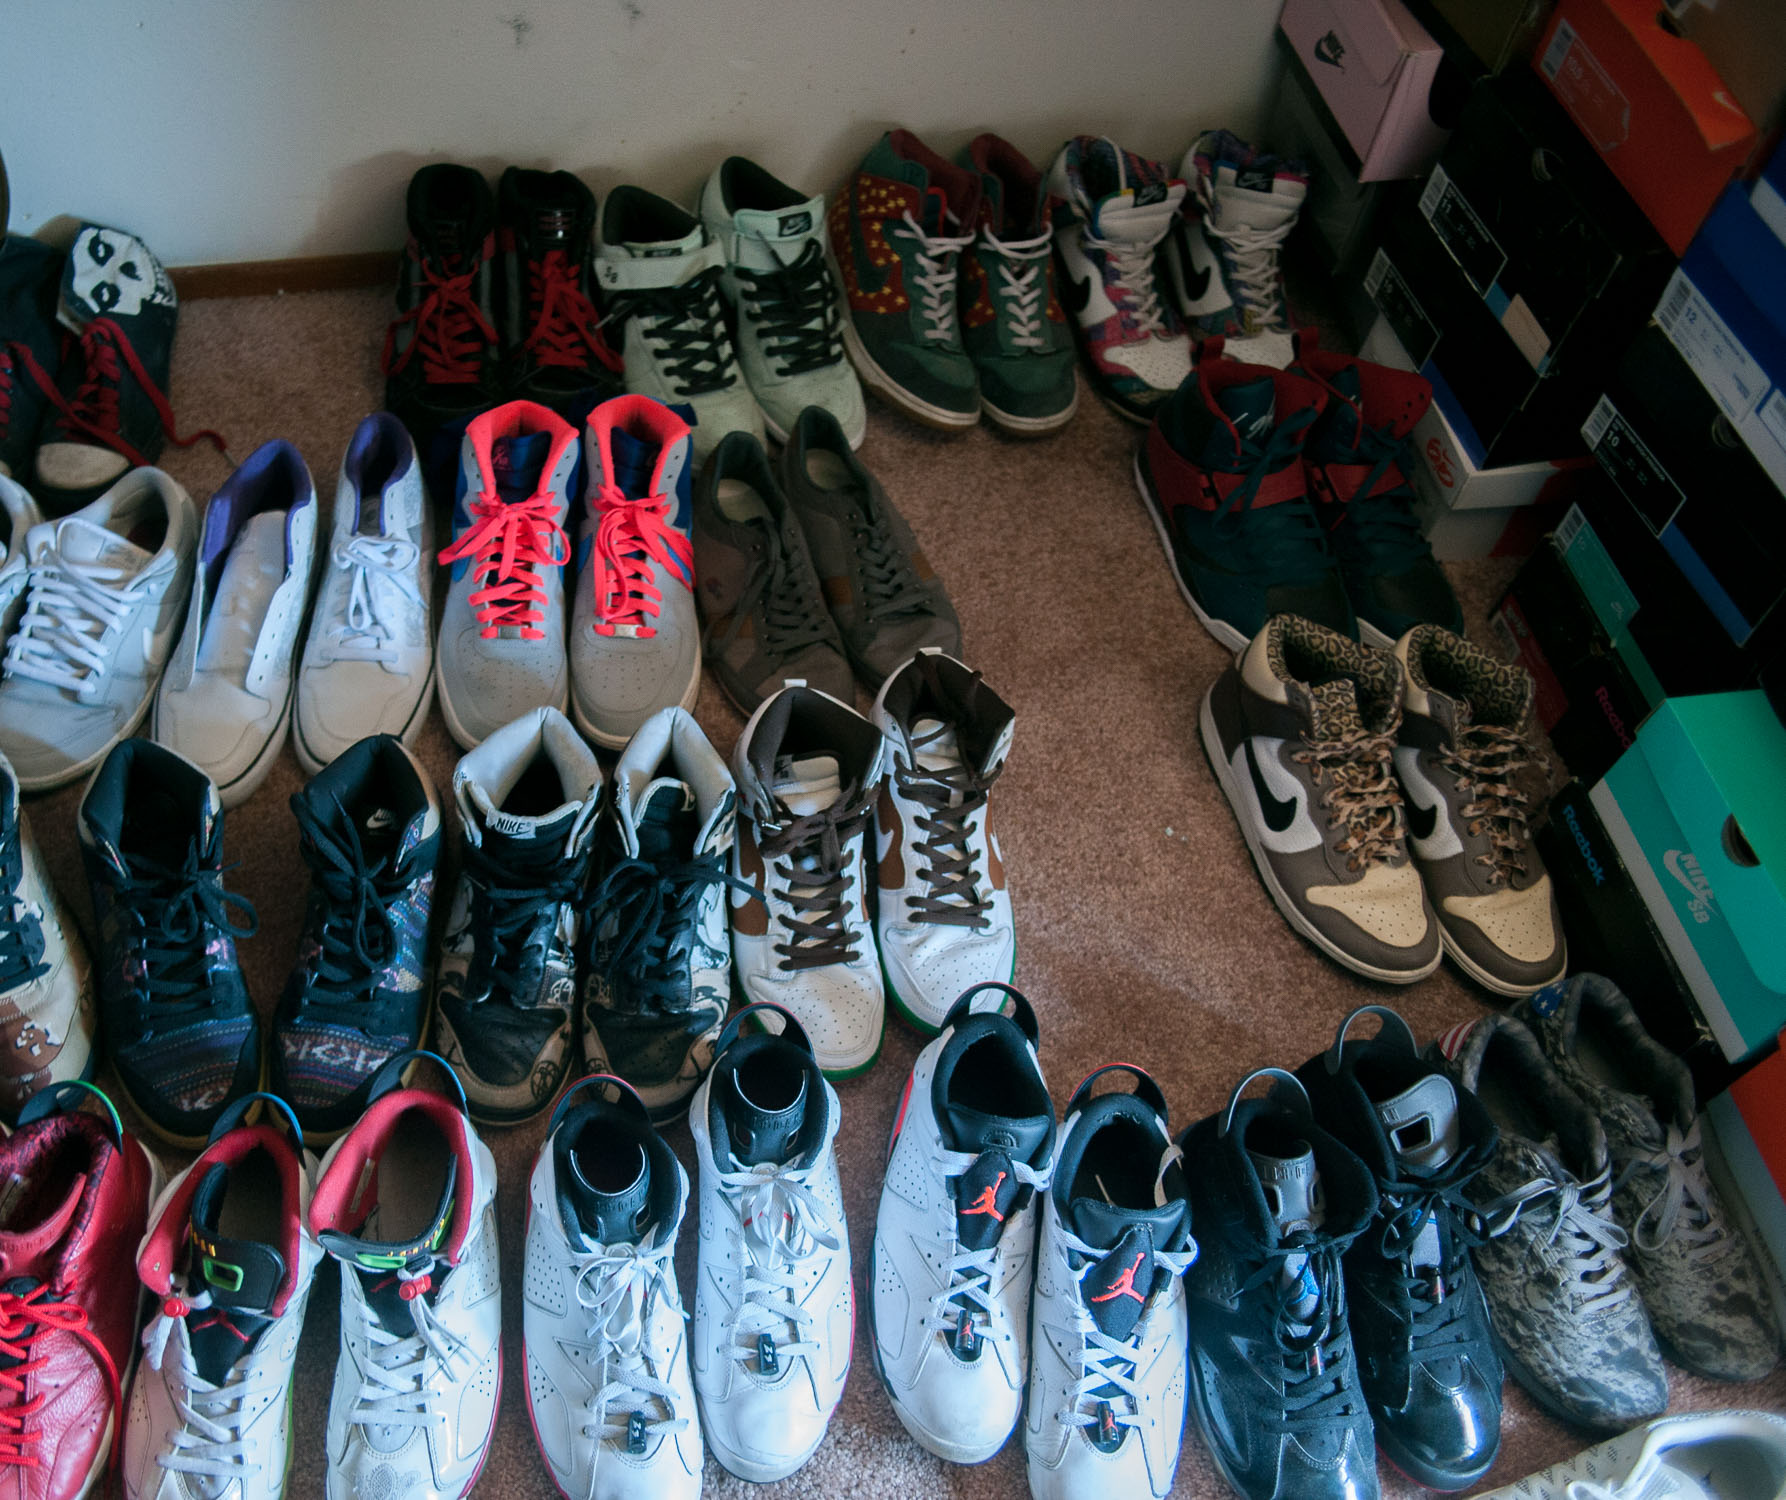 Malibu Ron's shoe collection, sans several pairs that are one-offs that only he owns.